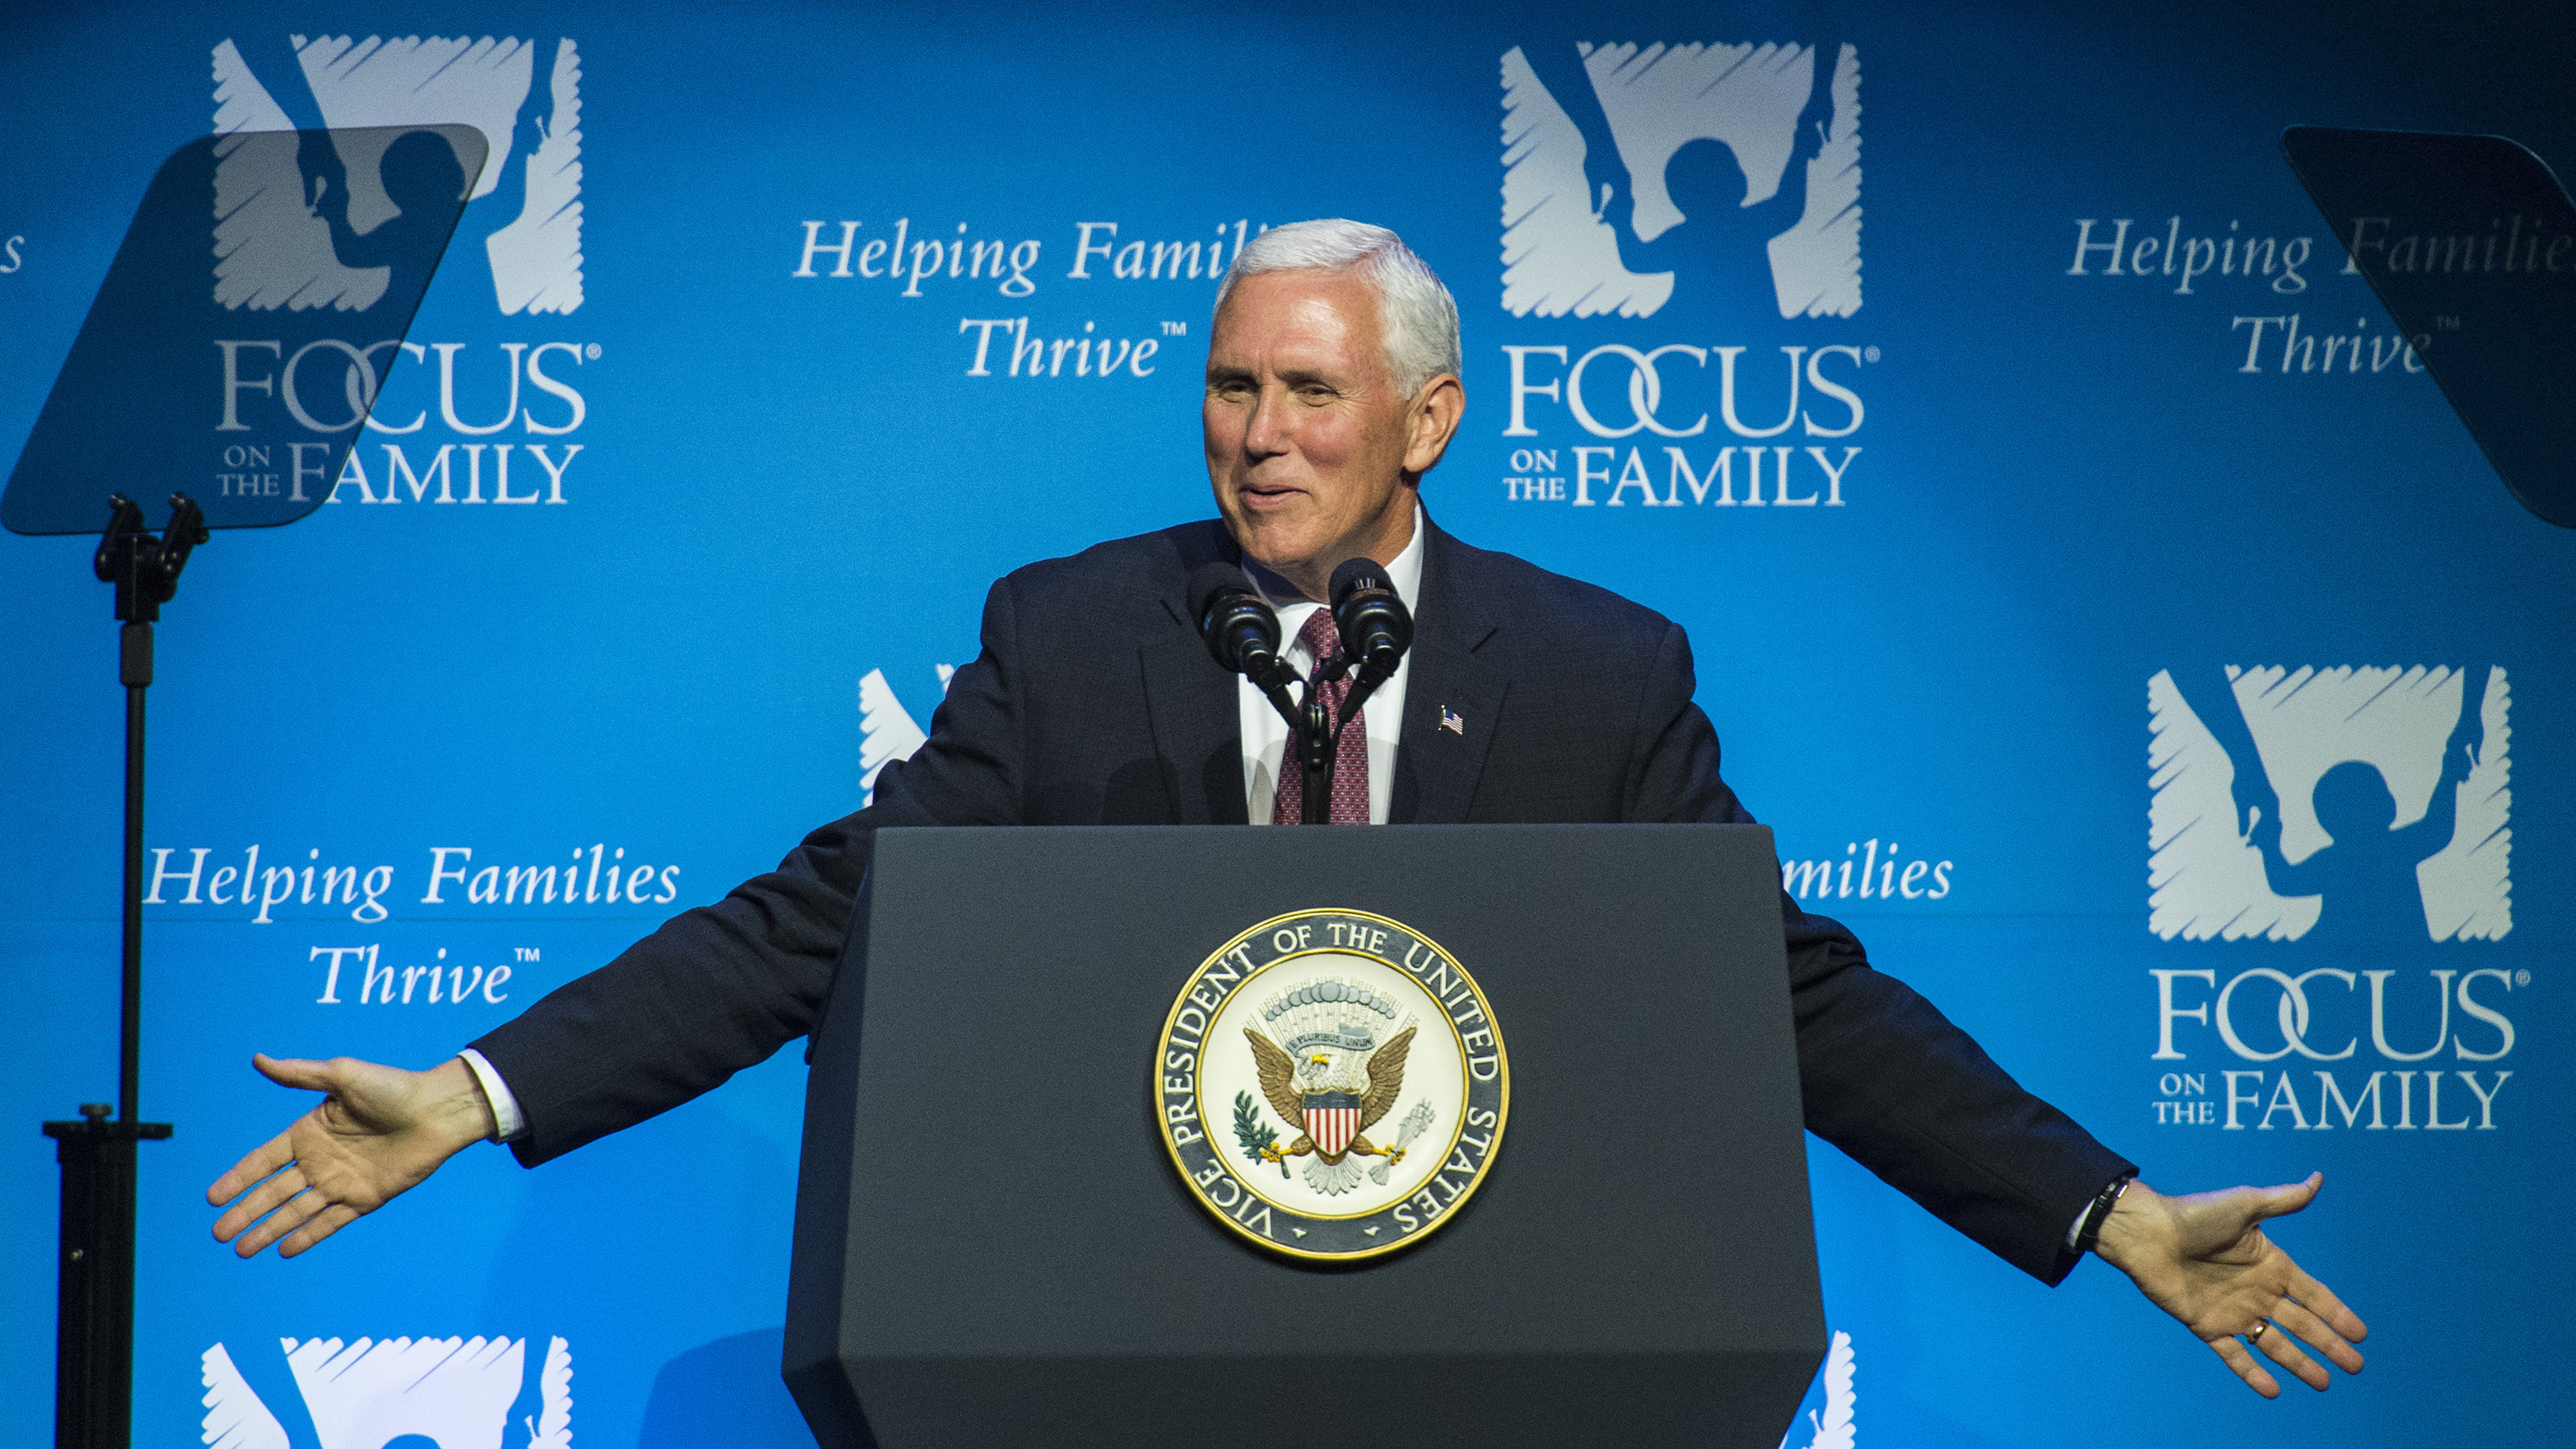 Photo: Mike Pence Focus On The Family (AP)